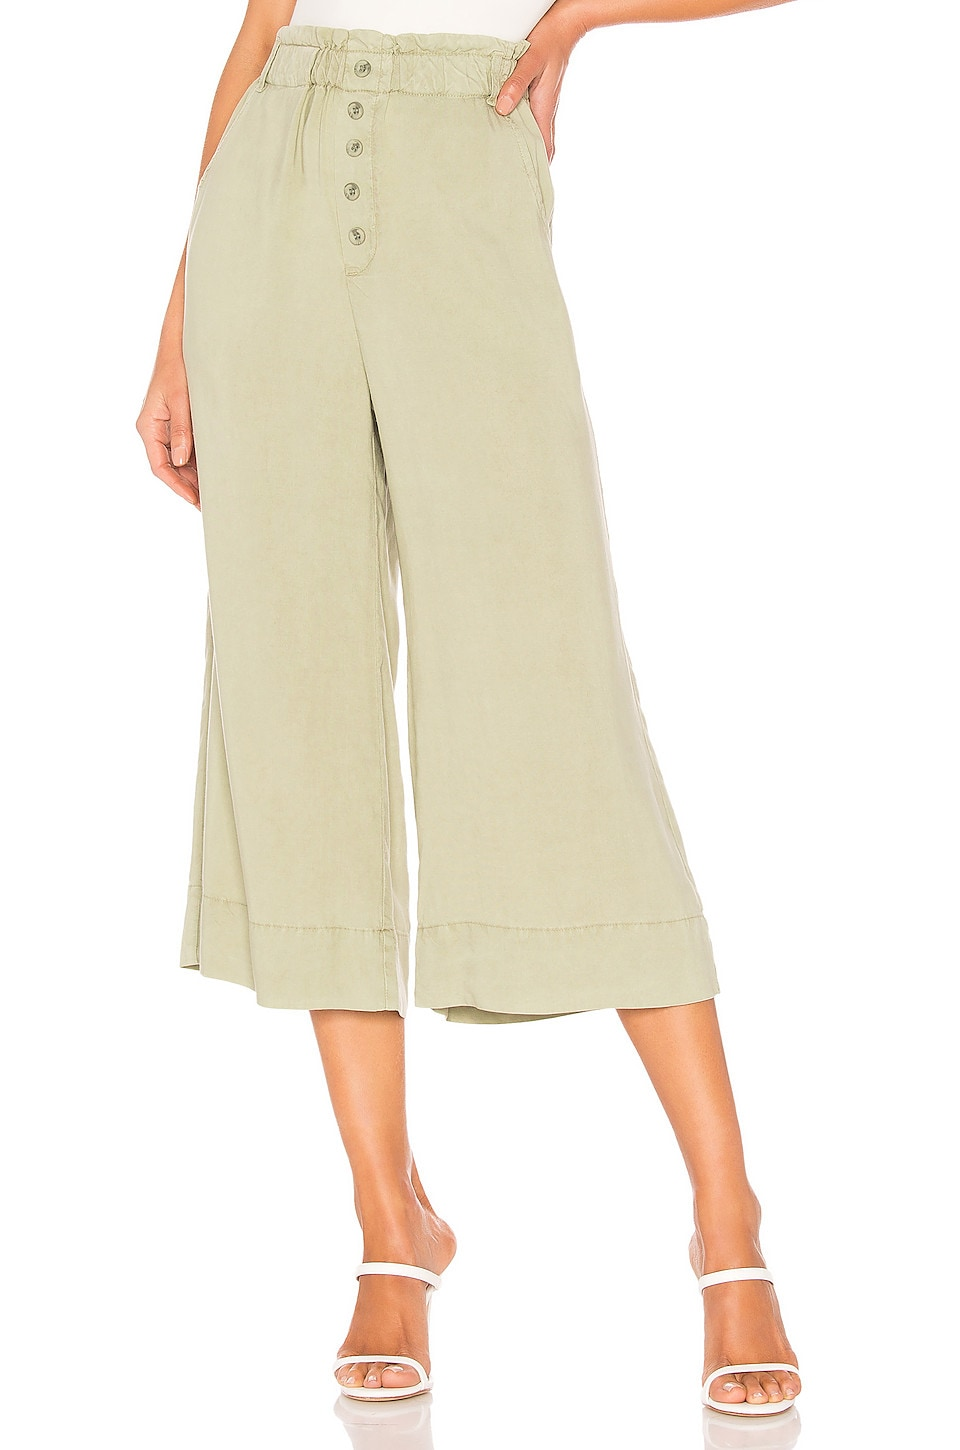 Bella Dahl Button Front Crop Pant in Spring Vine